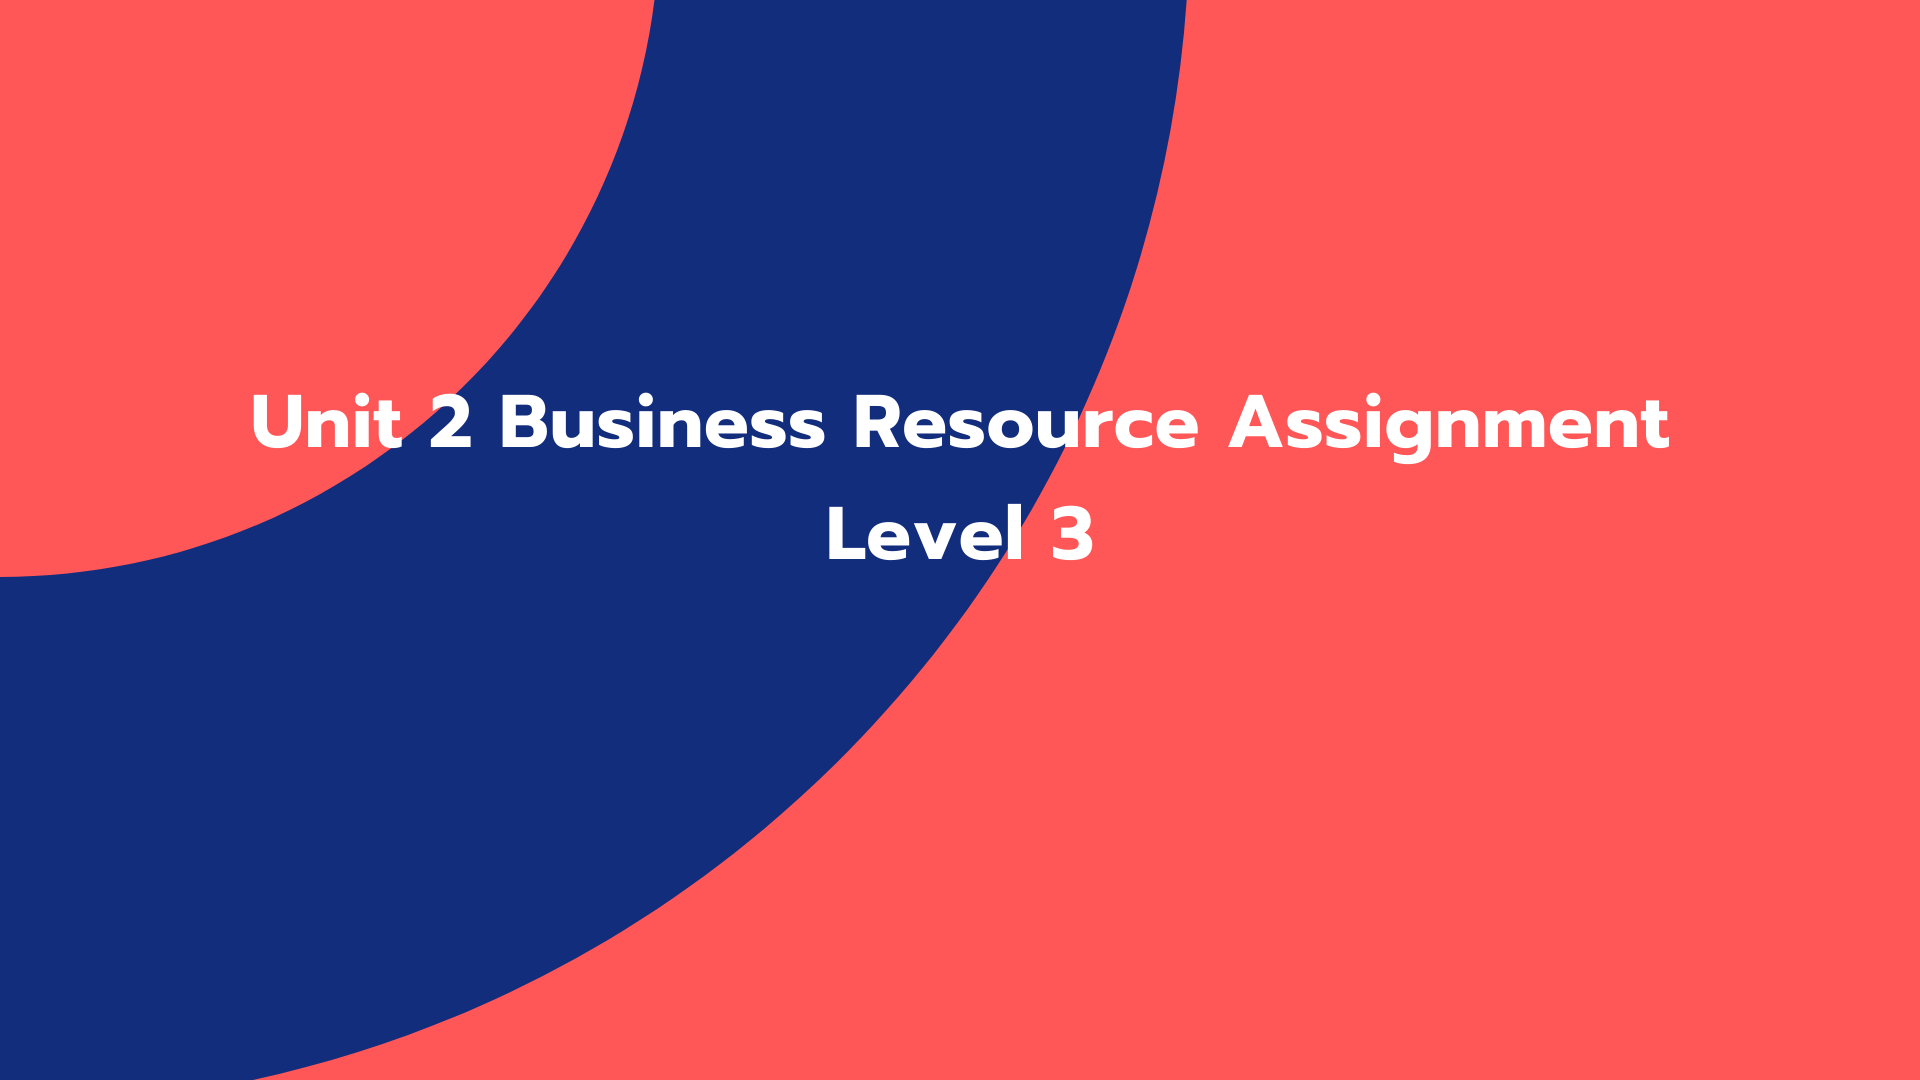 Unit 2 Business Resource Assignment Level 3